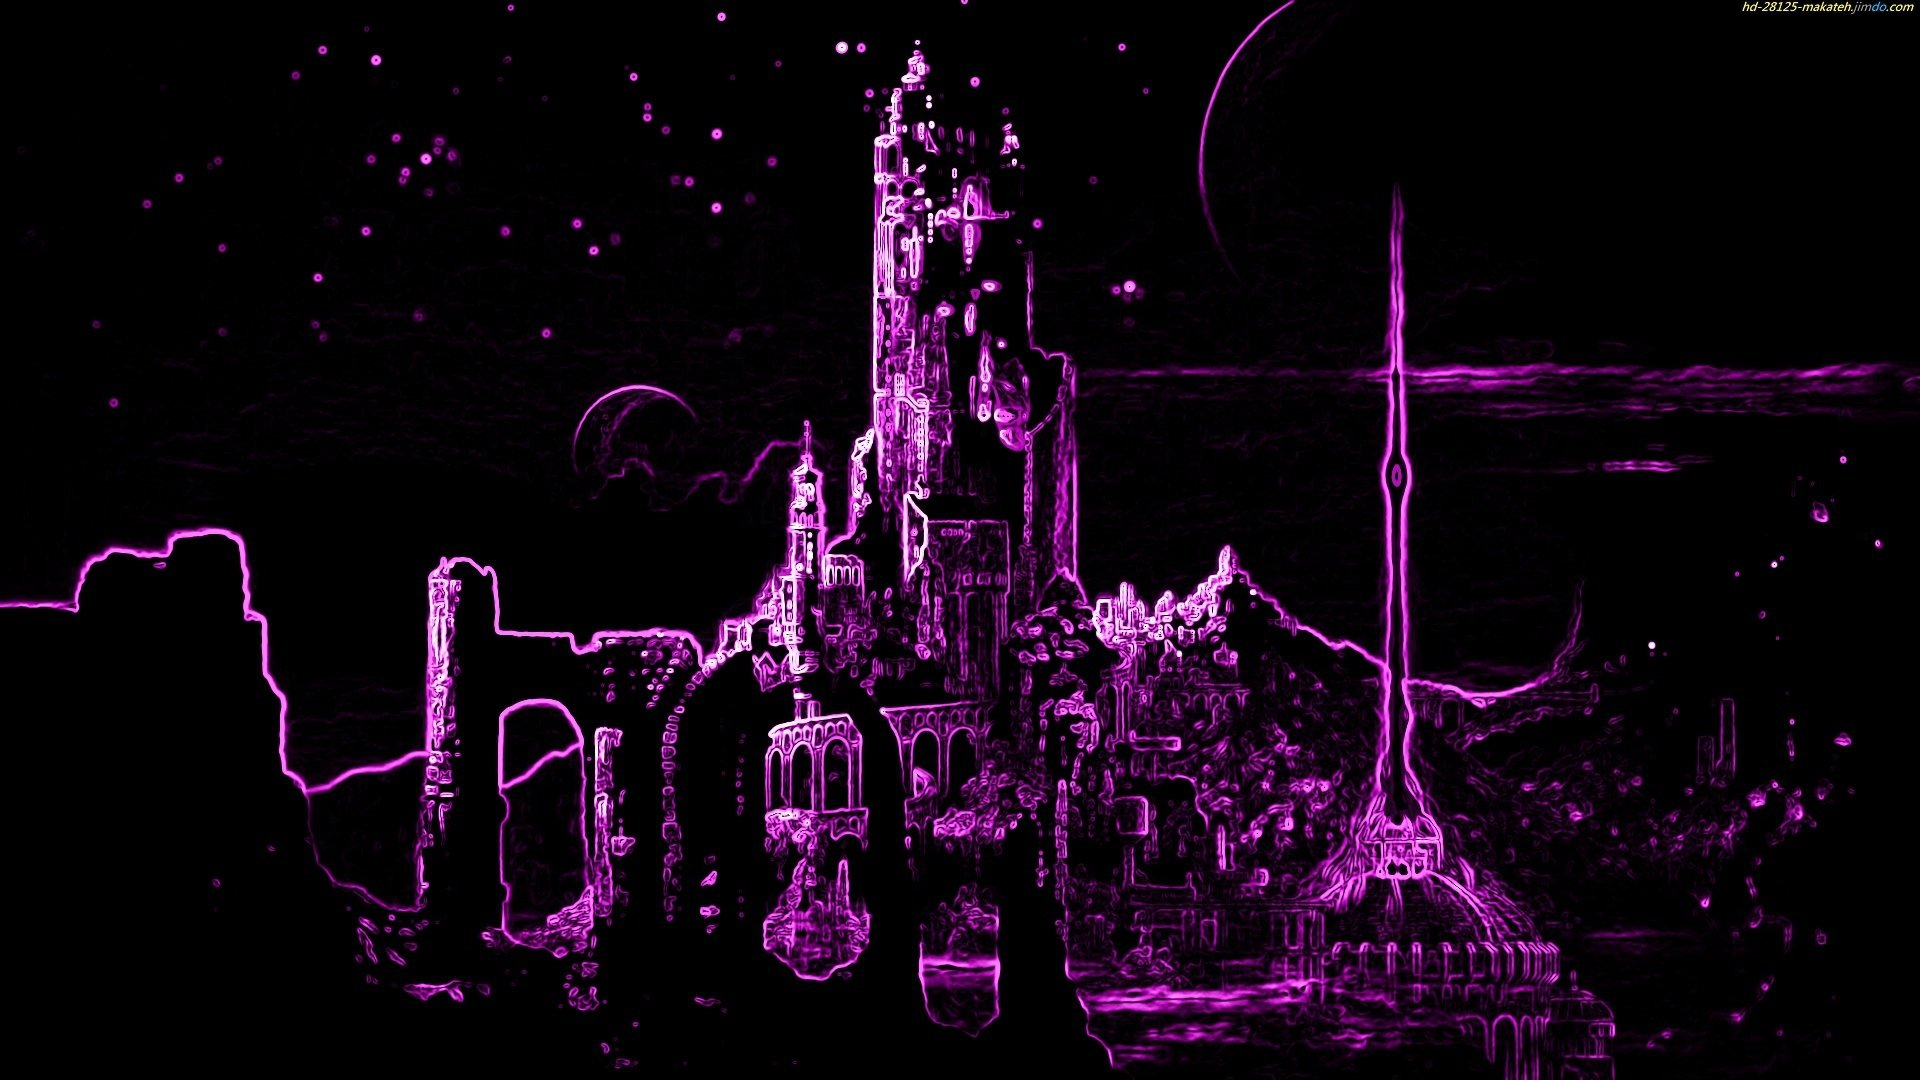 Neon City Hd Wallpaper Background Image 1920x1080 Id 404912 Wallpaper Abyss